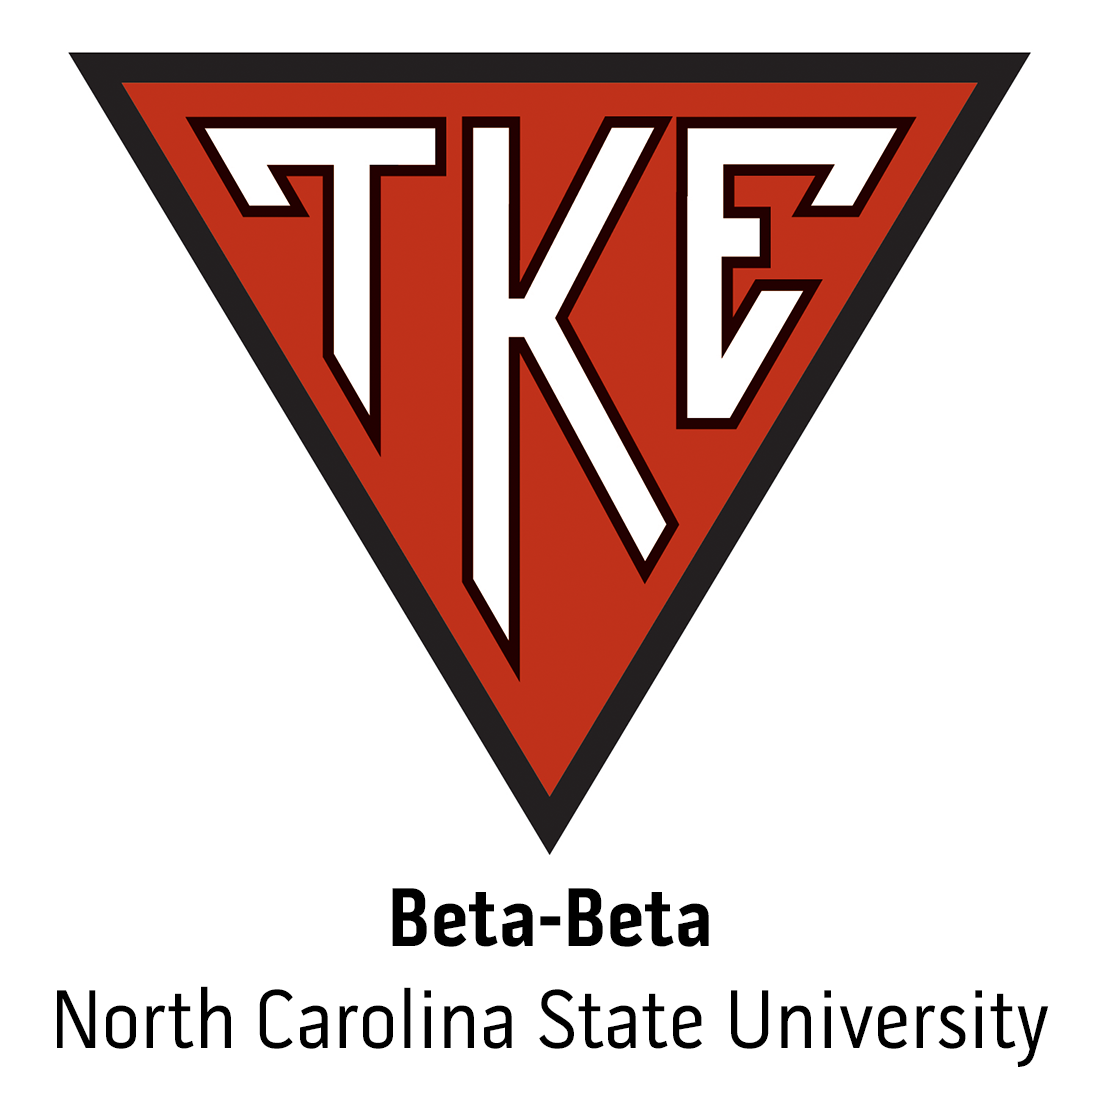 Beta-Beta Chapter at North Carolina State University